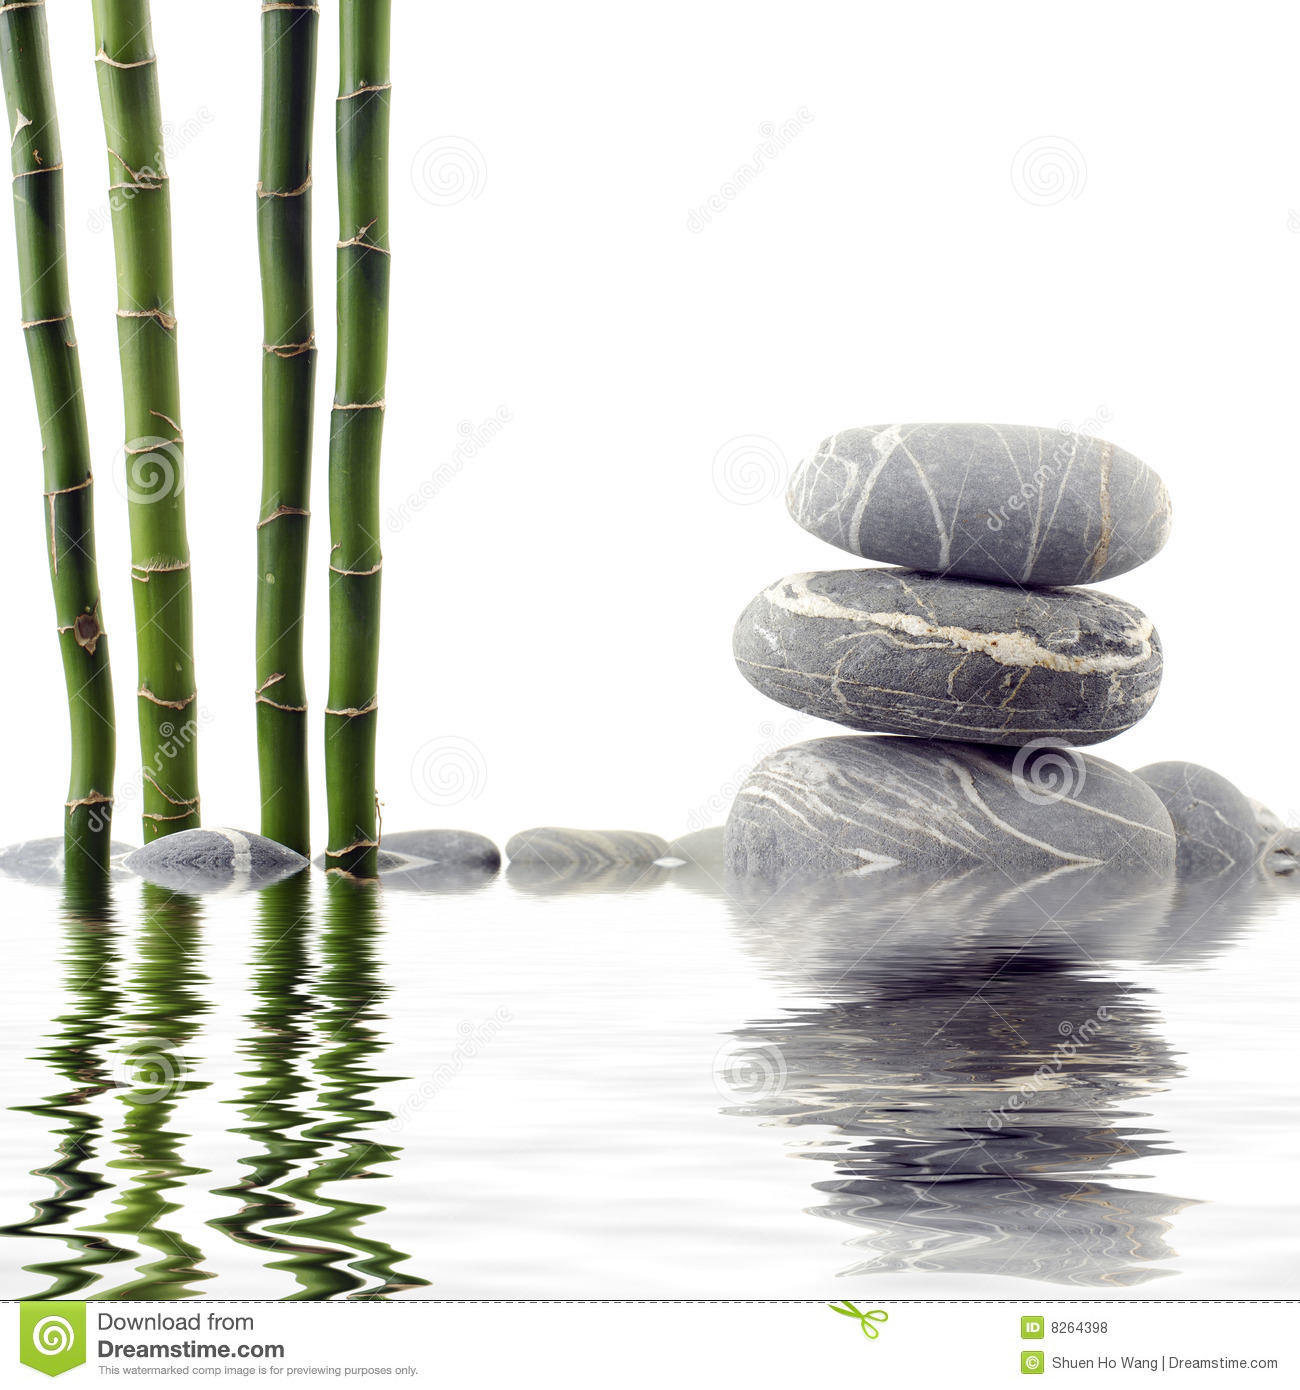 Bamboo and stone